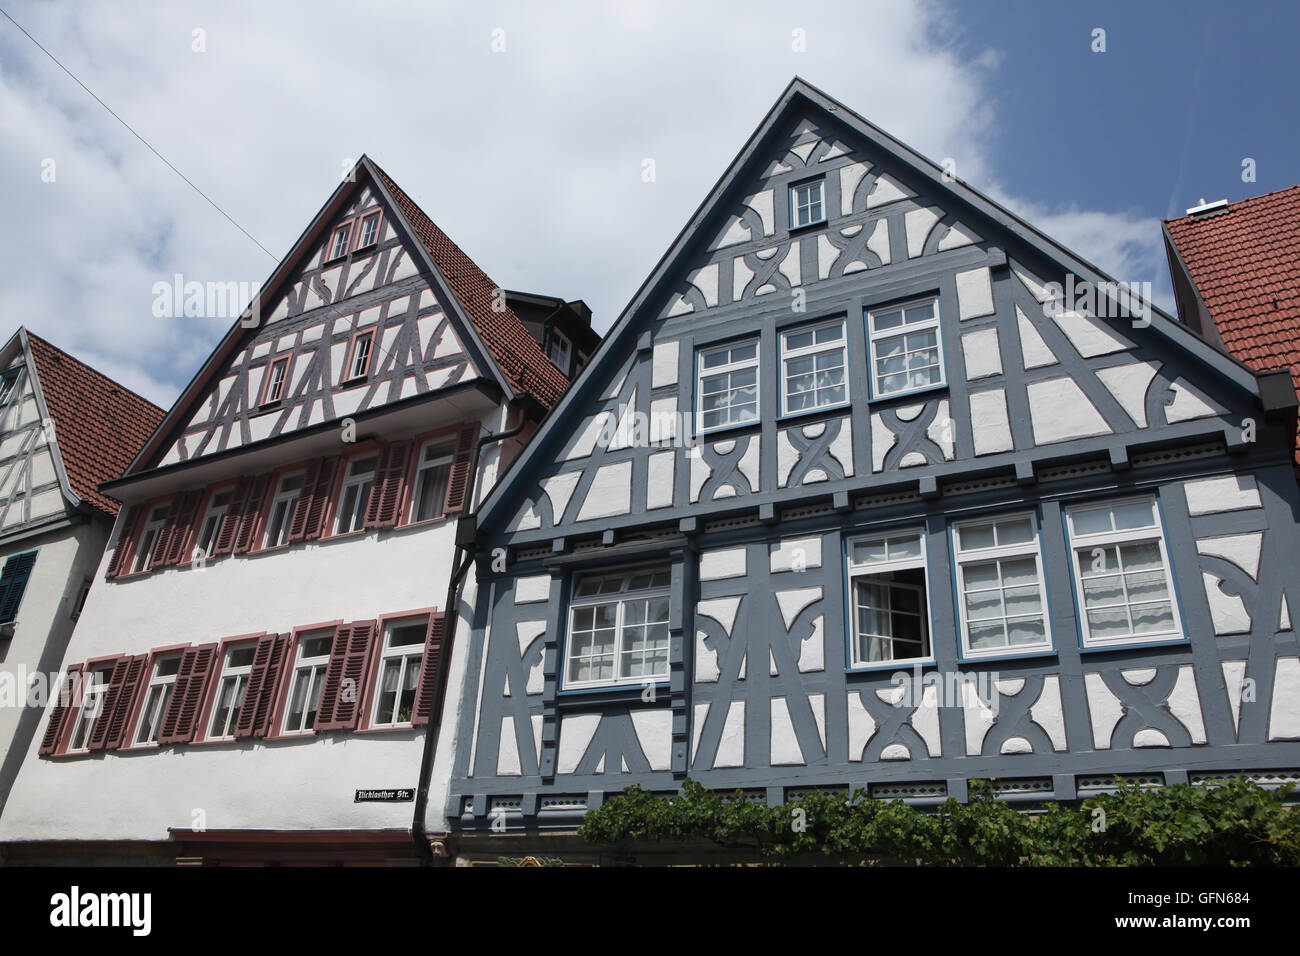 Traditional half-timbered houses in Marbach am Neckar, Baden-Wurttemberg, Germany. - Stock Image